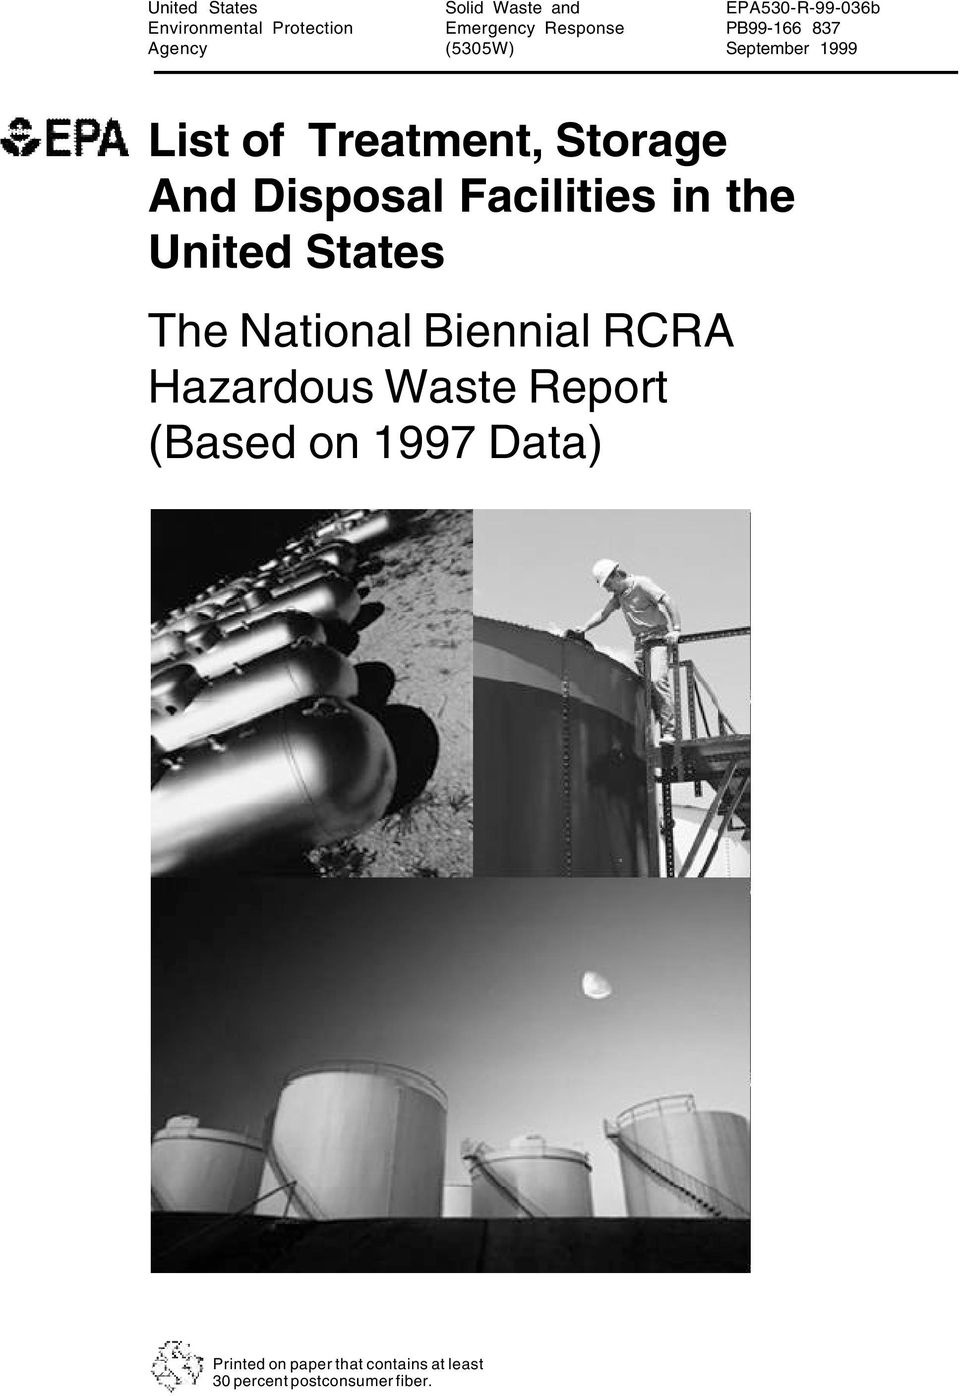 Disposal Facilities in the United States The National Biennial RCRA Hazardous Waste